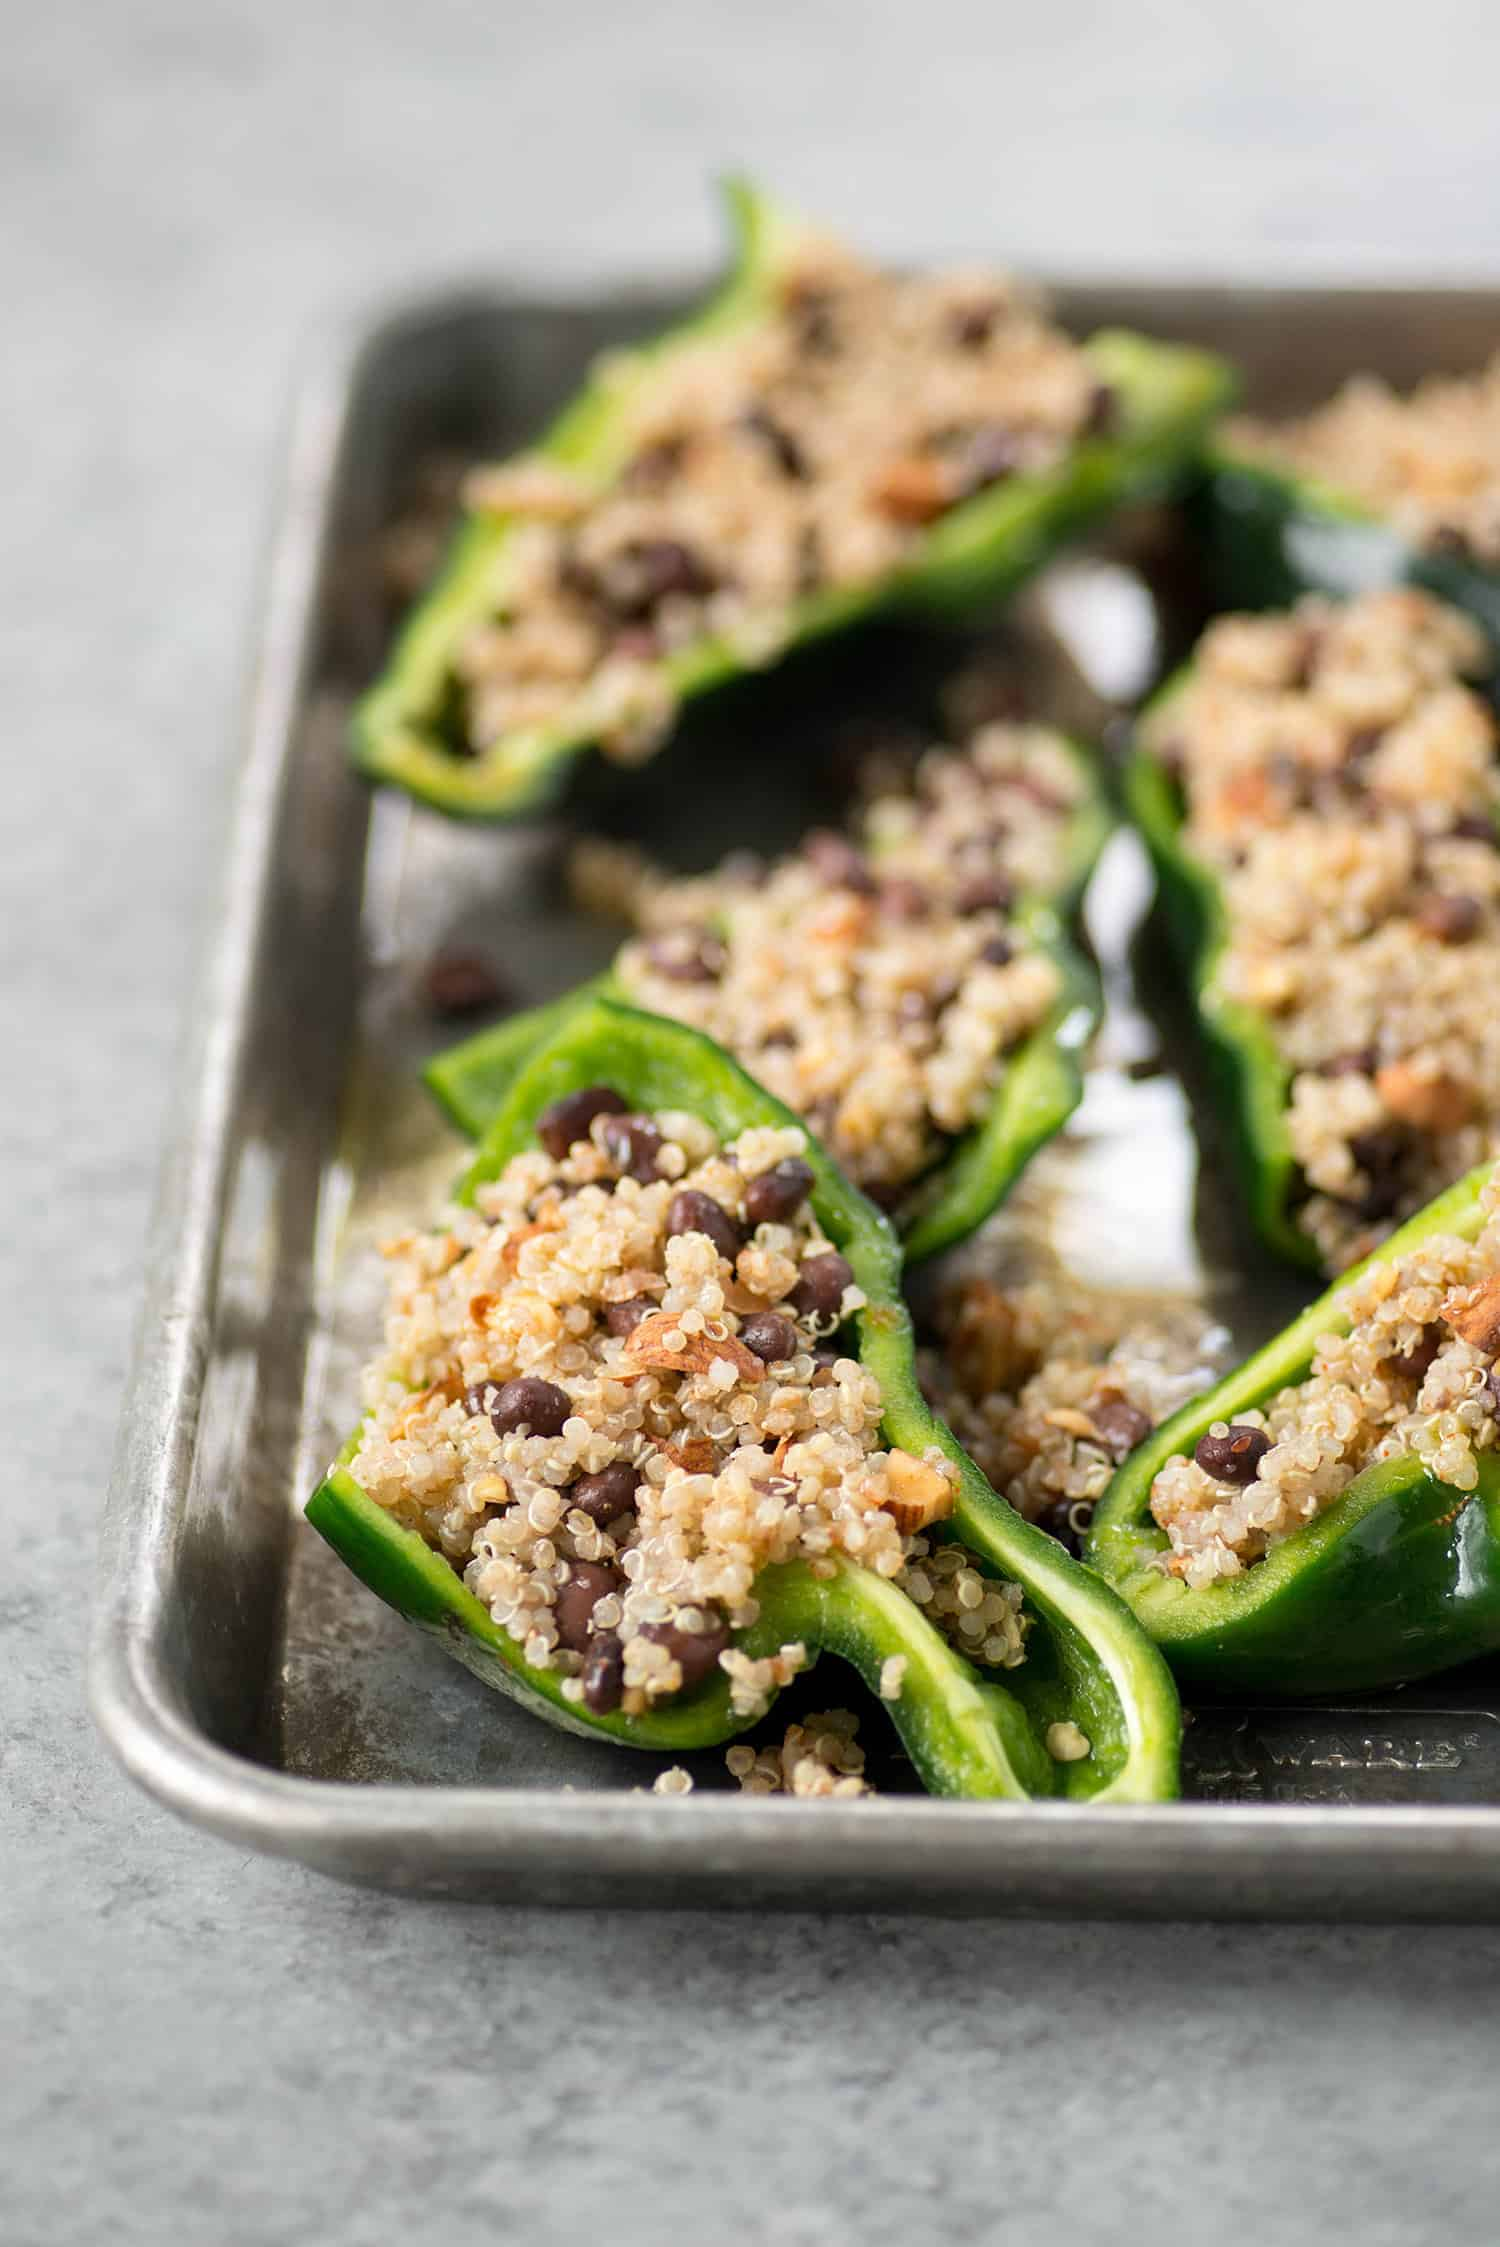 Stuffed Poblanos with Quinoa, Black Beans and a quick mole sauce. We love this healthy vegan and gluten-free dinner. | www.delishknowledge.com